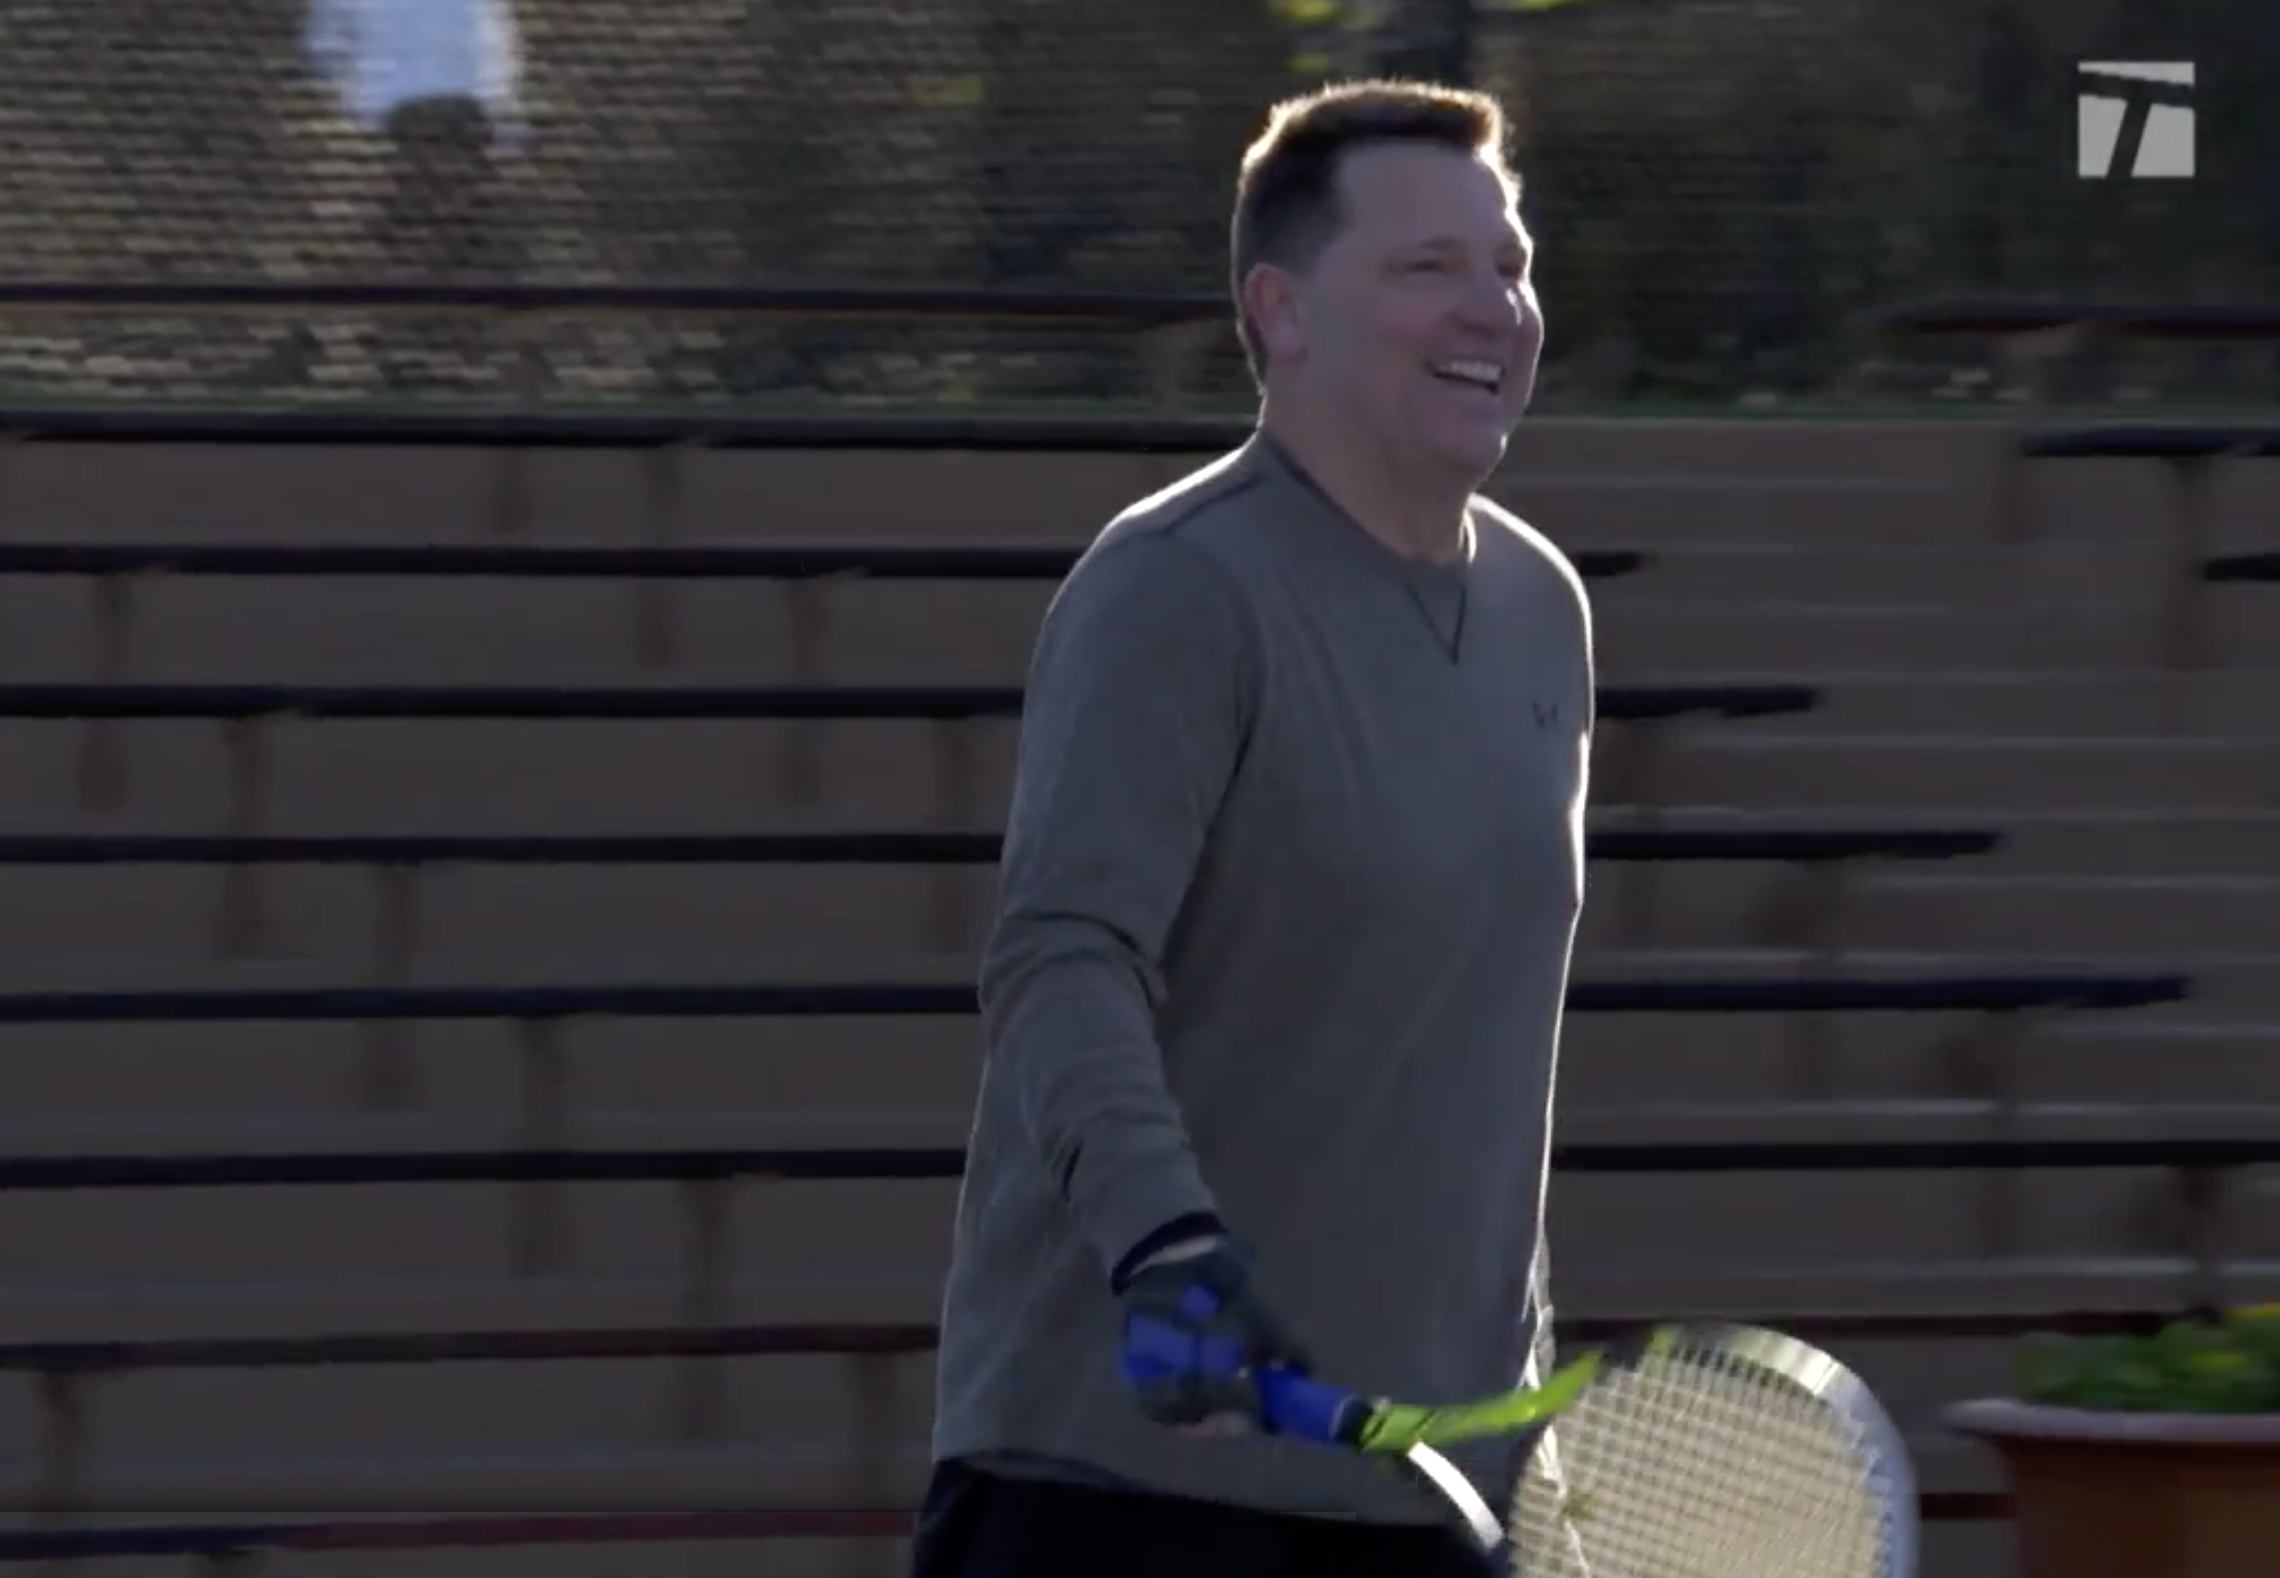 Jonathan playing tennis again 2018